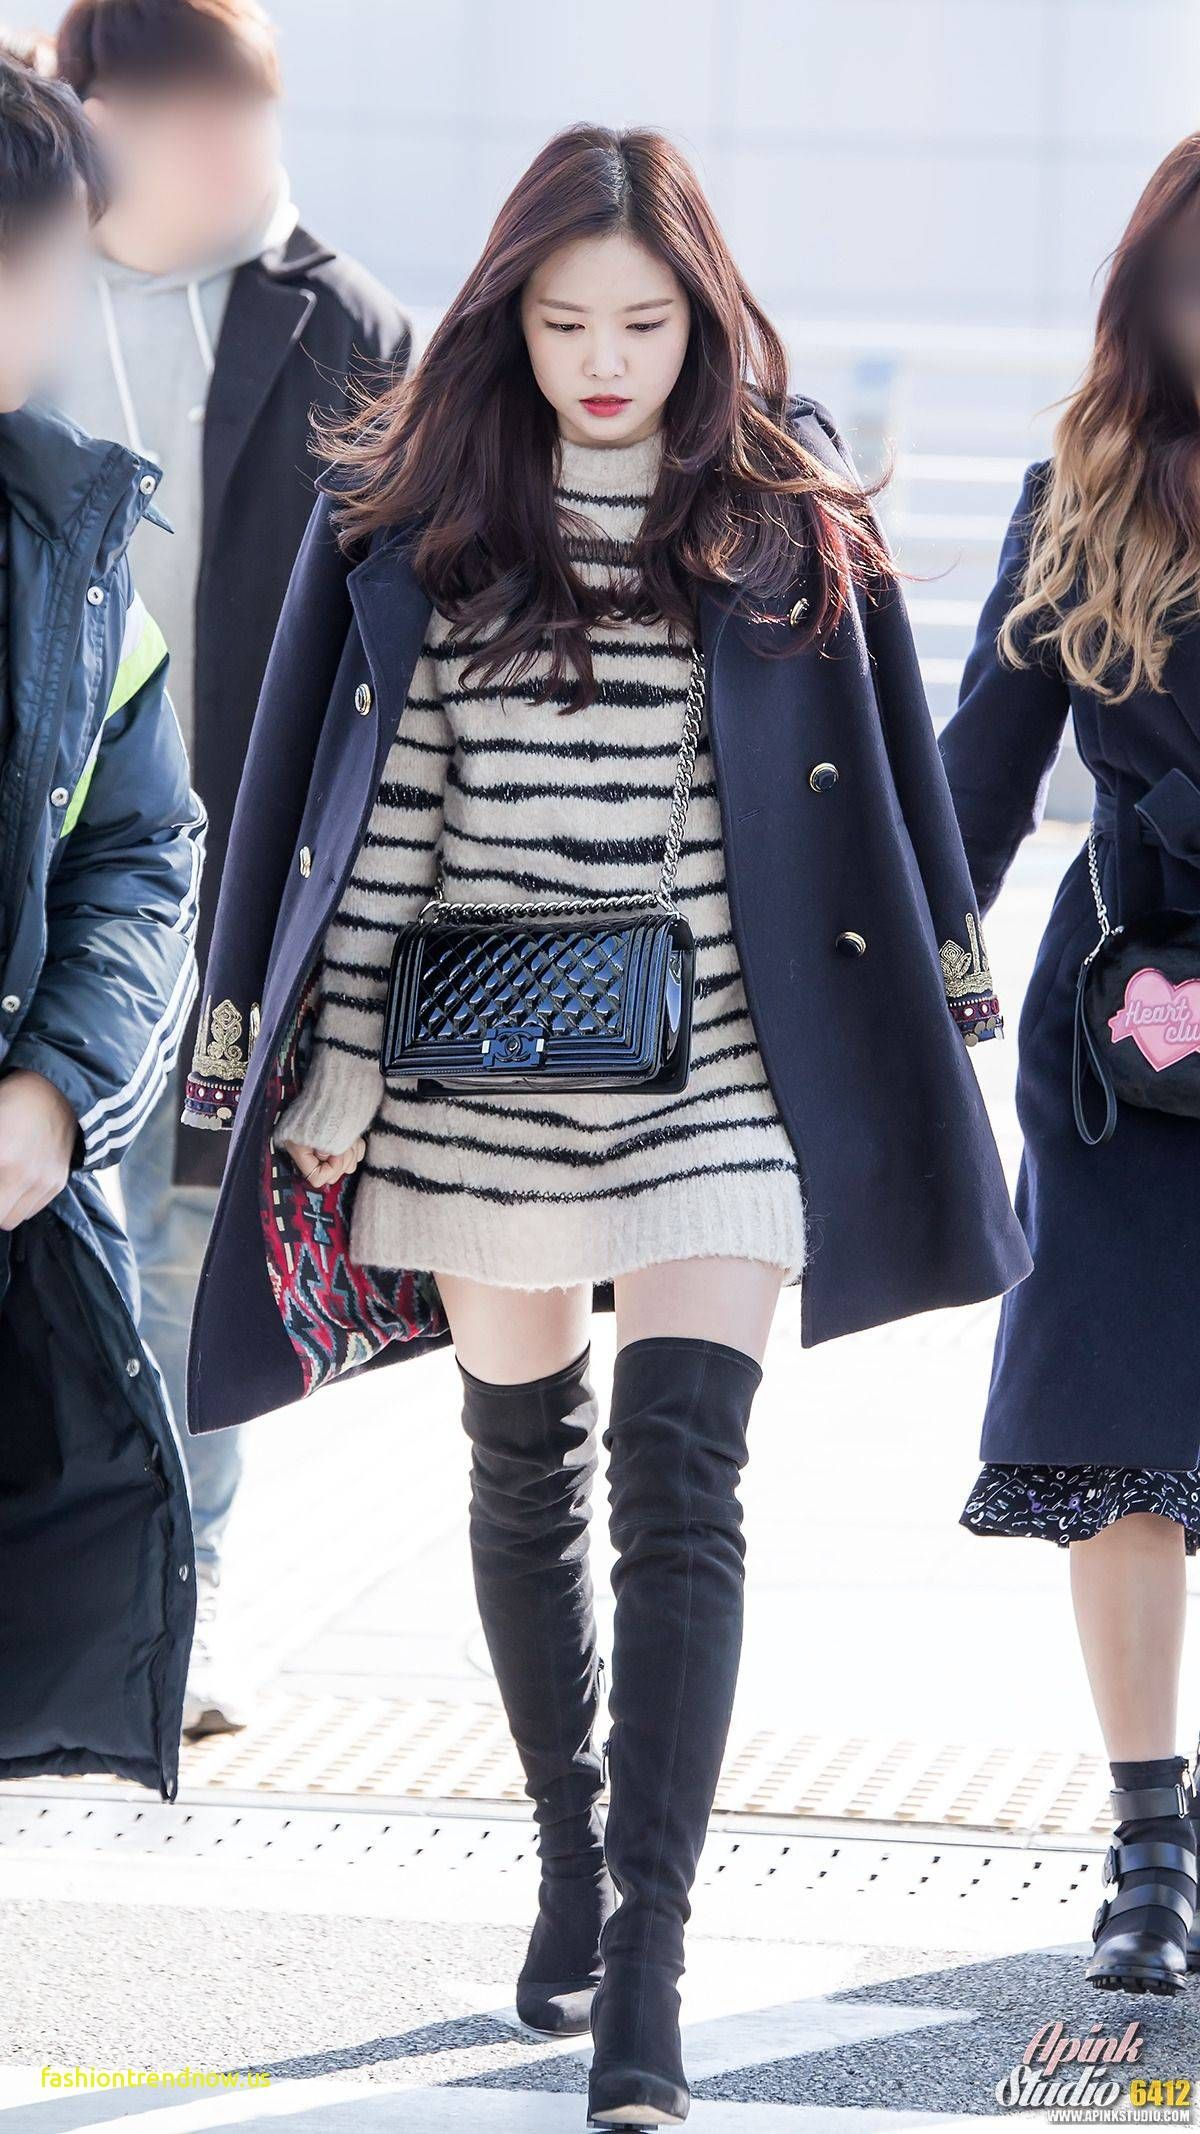 Best Of Kpop Airport Fashion... | Look fashion, Looks ...